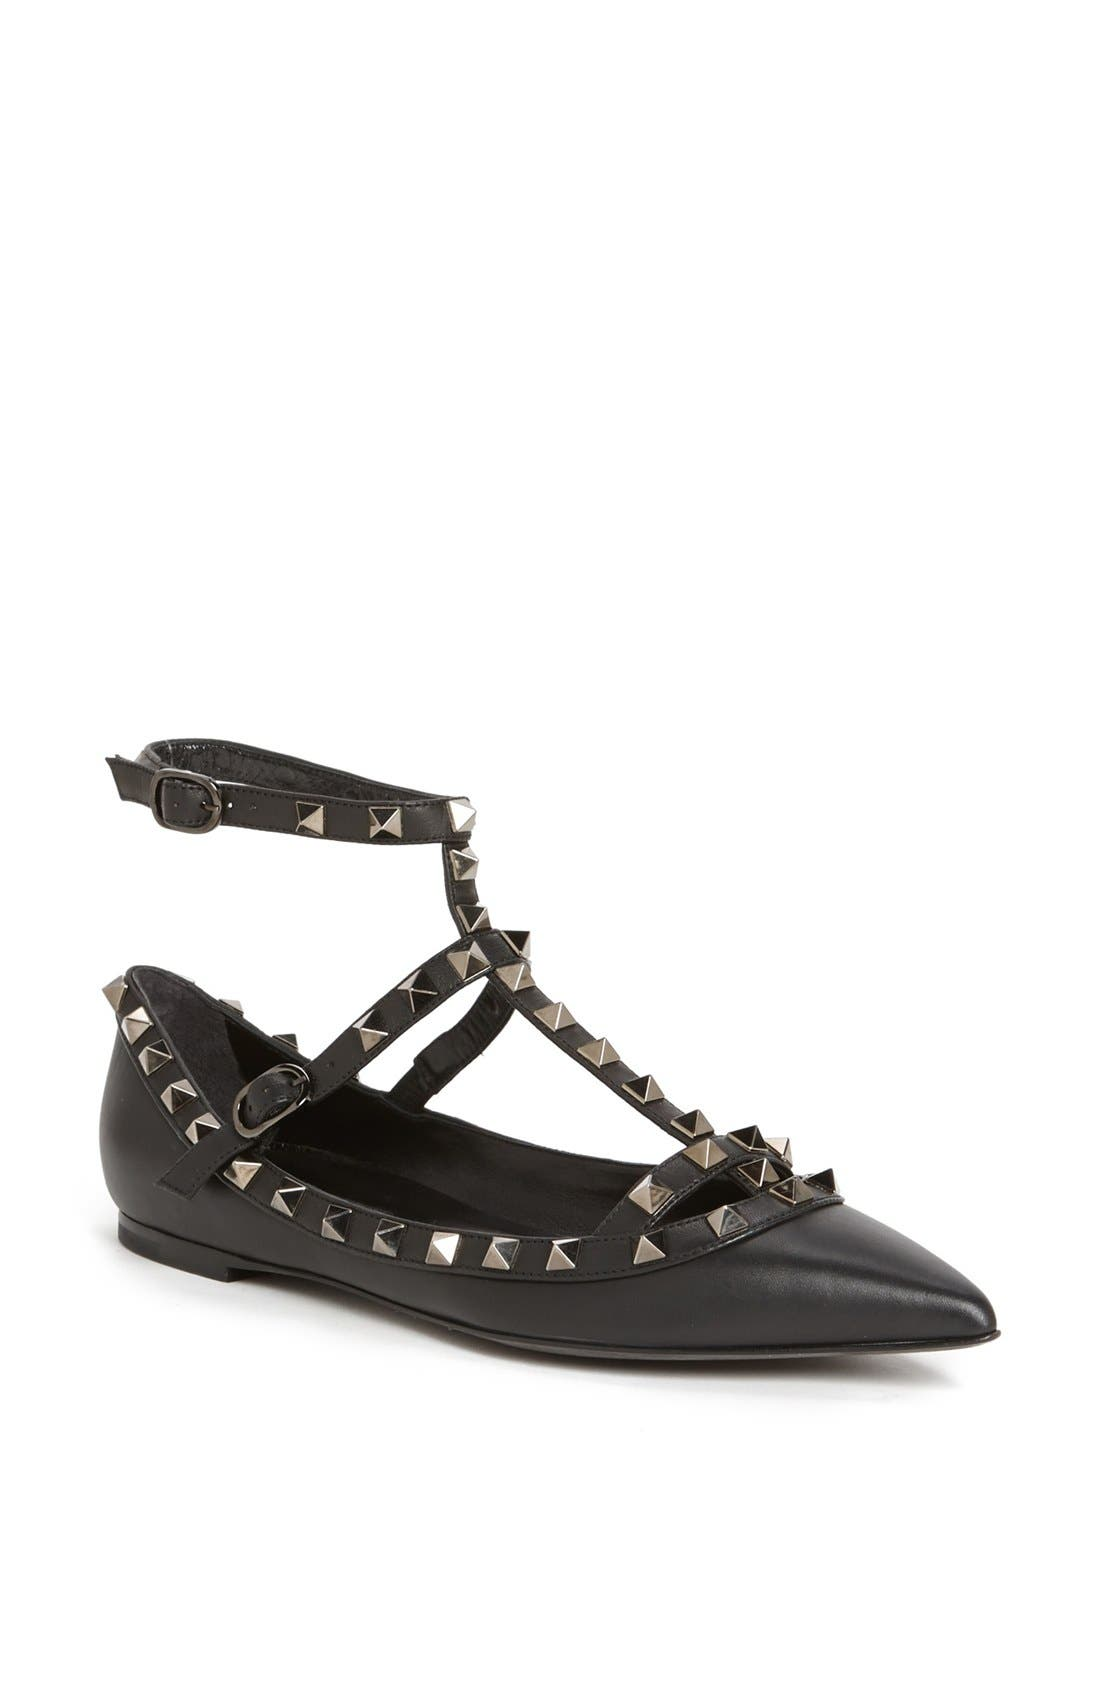 Valentino 'Rockstud' Double Ankle Strap Pointy Toe Flat